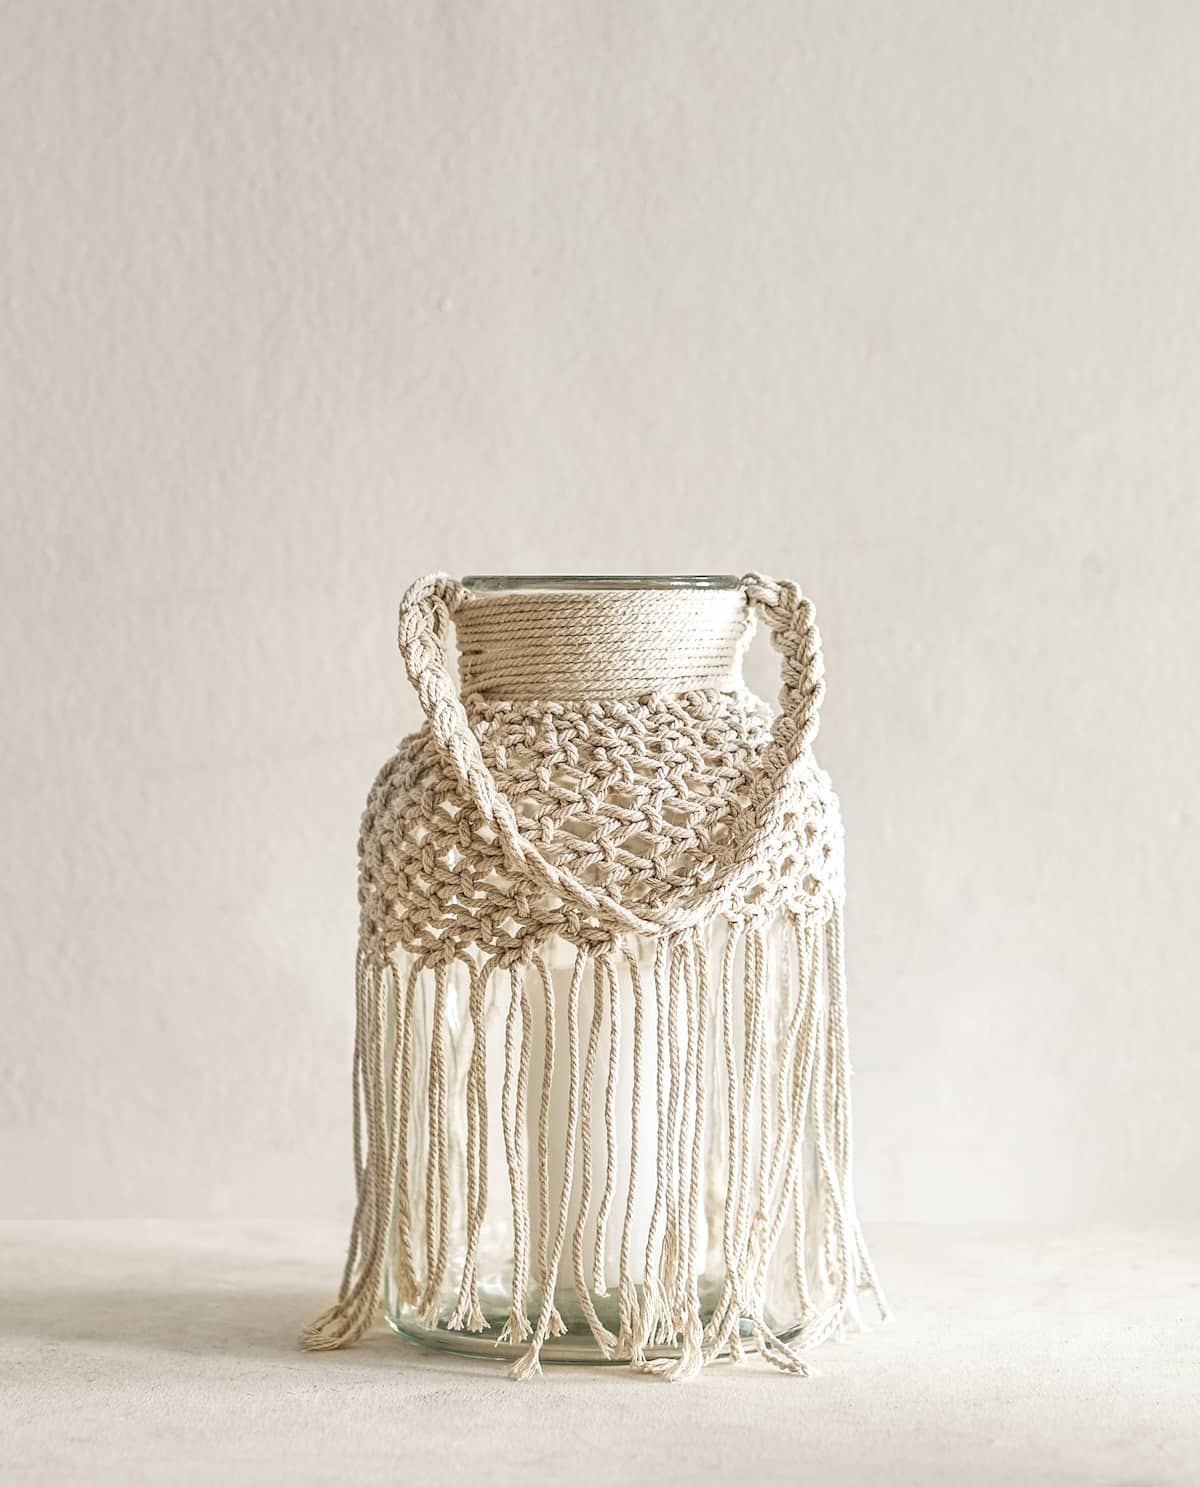 MACRAMÉ GLASS LANTERN